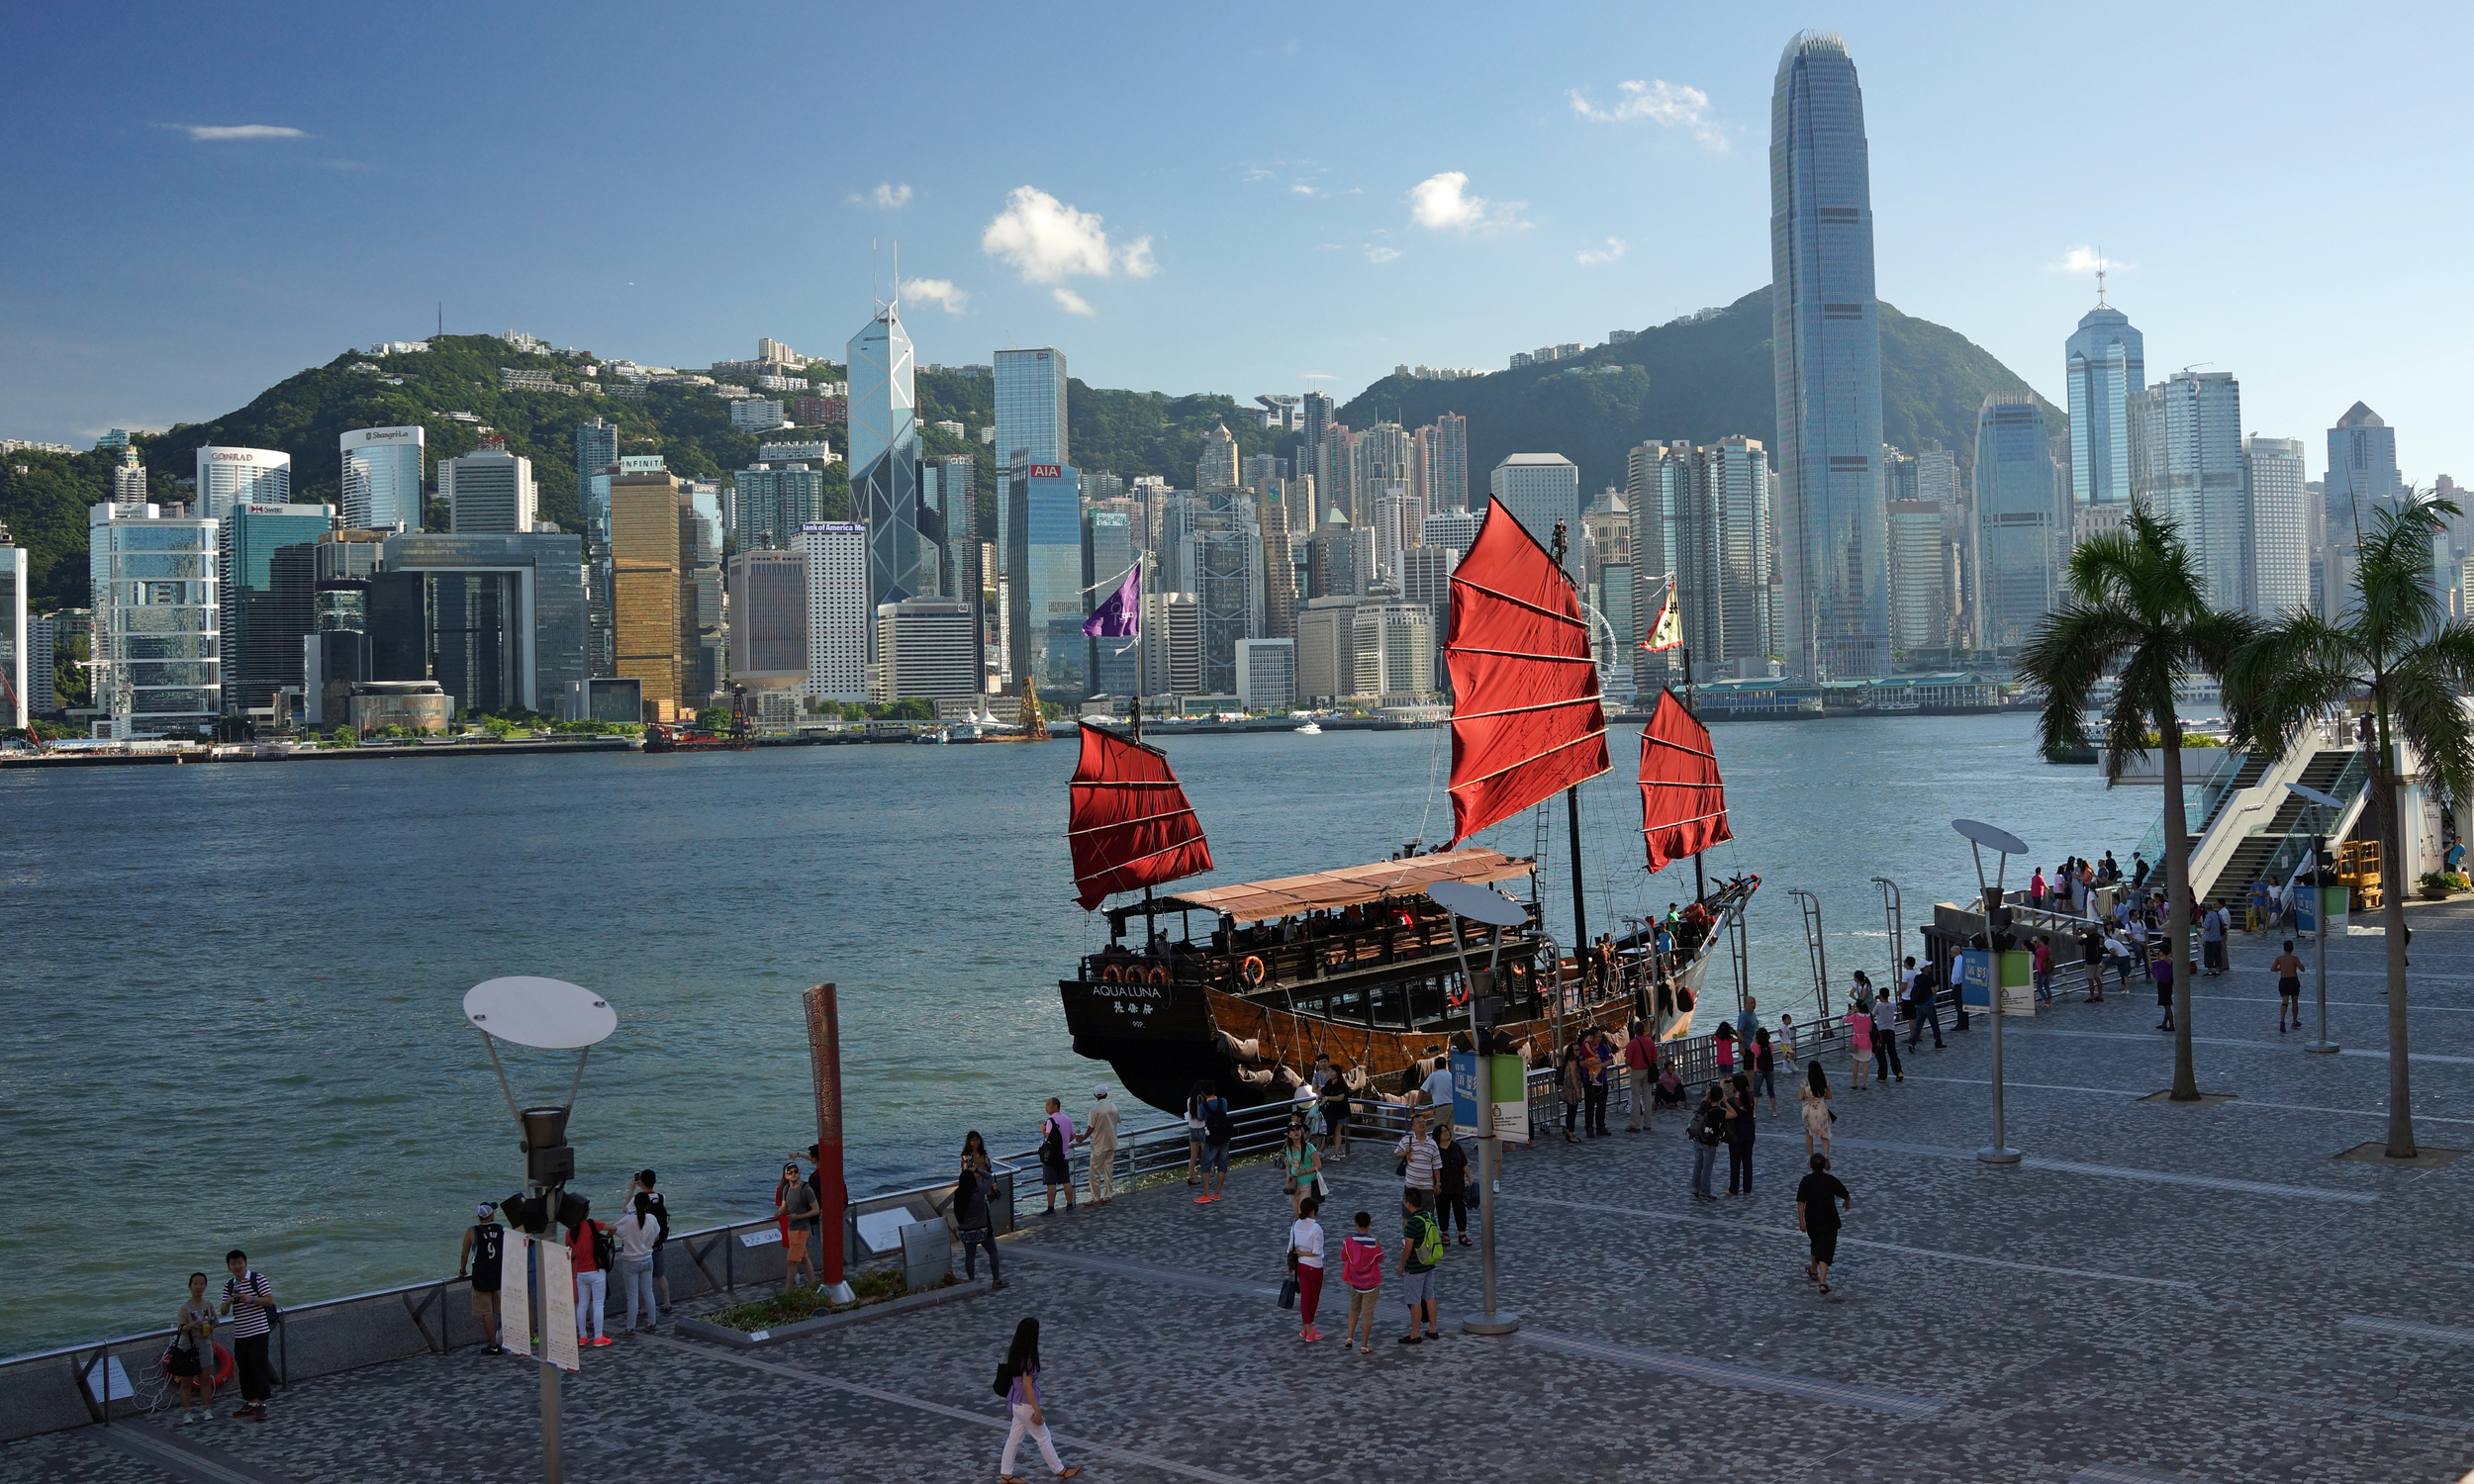 This is my favourite image of the iconic Aqua Luna fishing junk which putters around the harbour day and night... it was a lovely clear day and just look at the view of Hong Kong Island!! ...